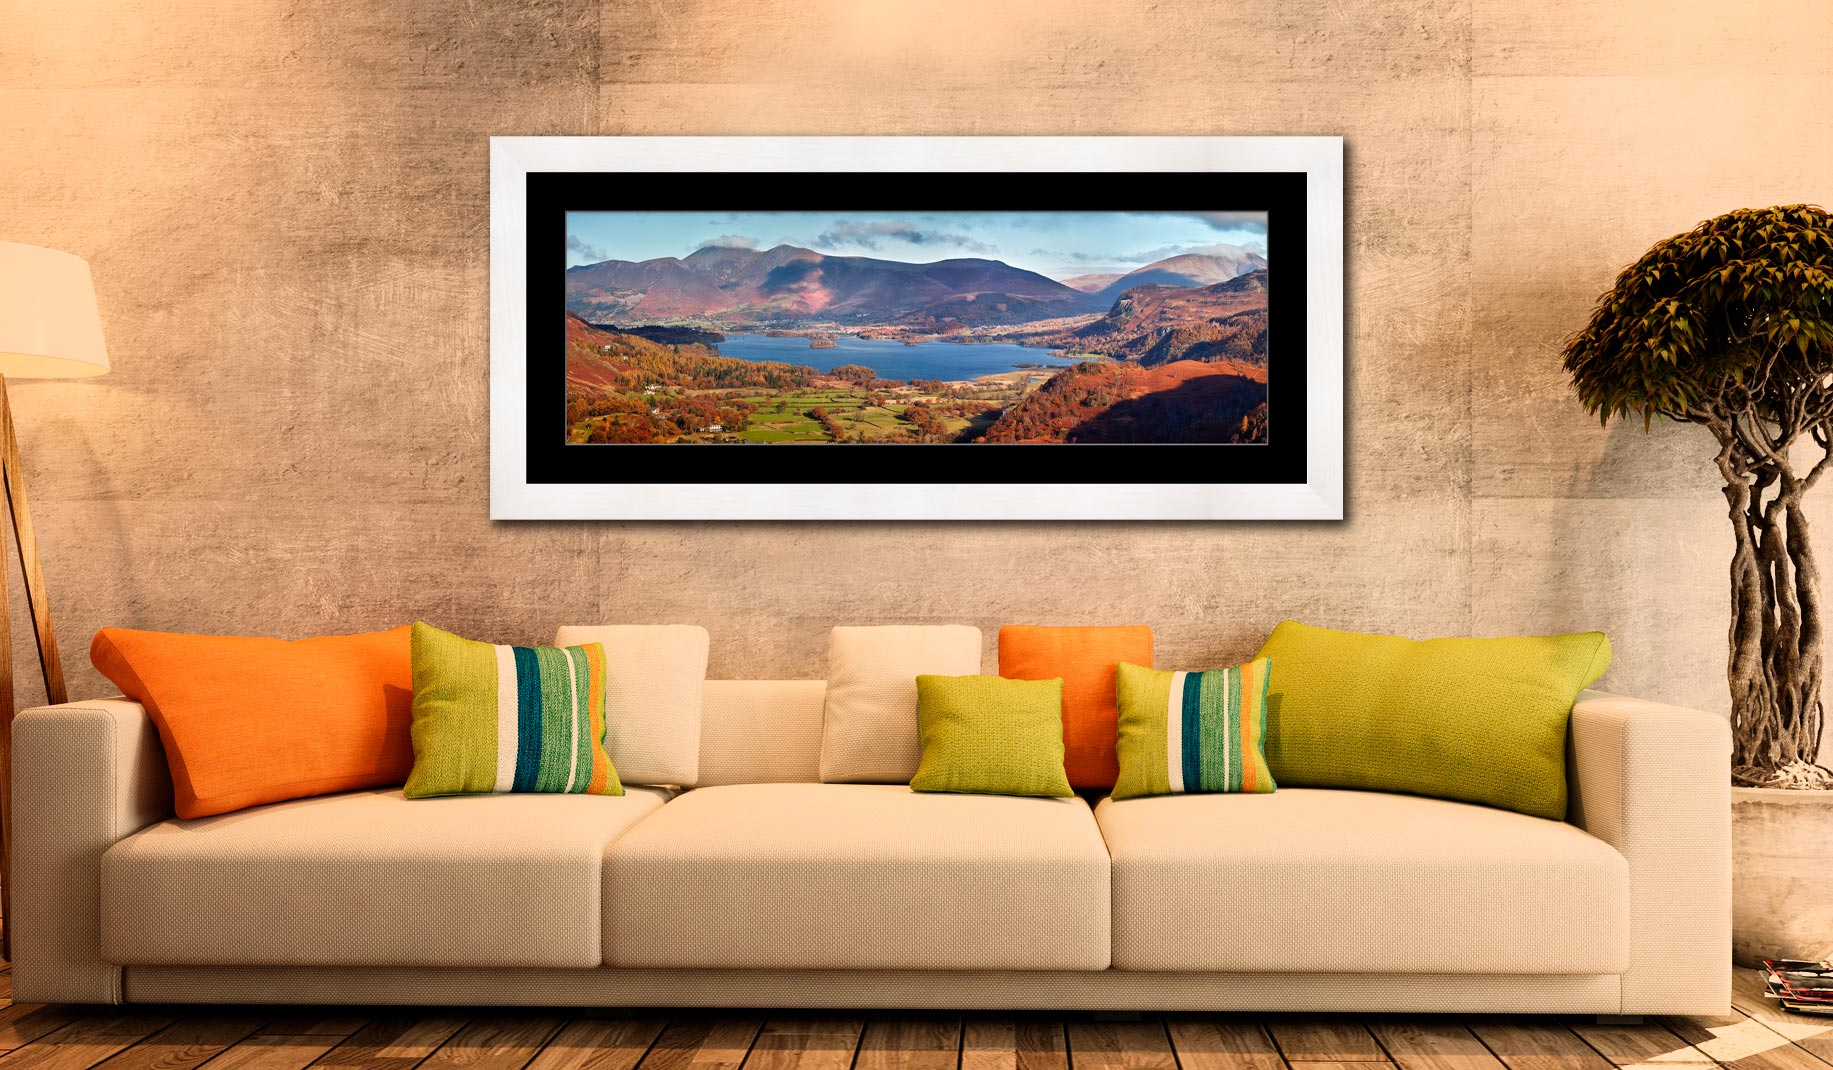 Derwent Water Autumn Panorama - Framed Print with Mount on Wall